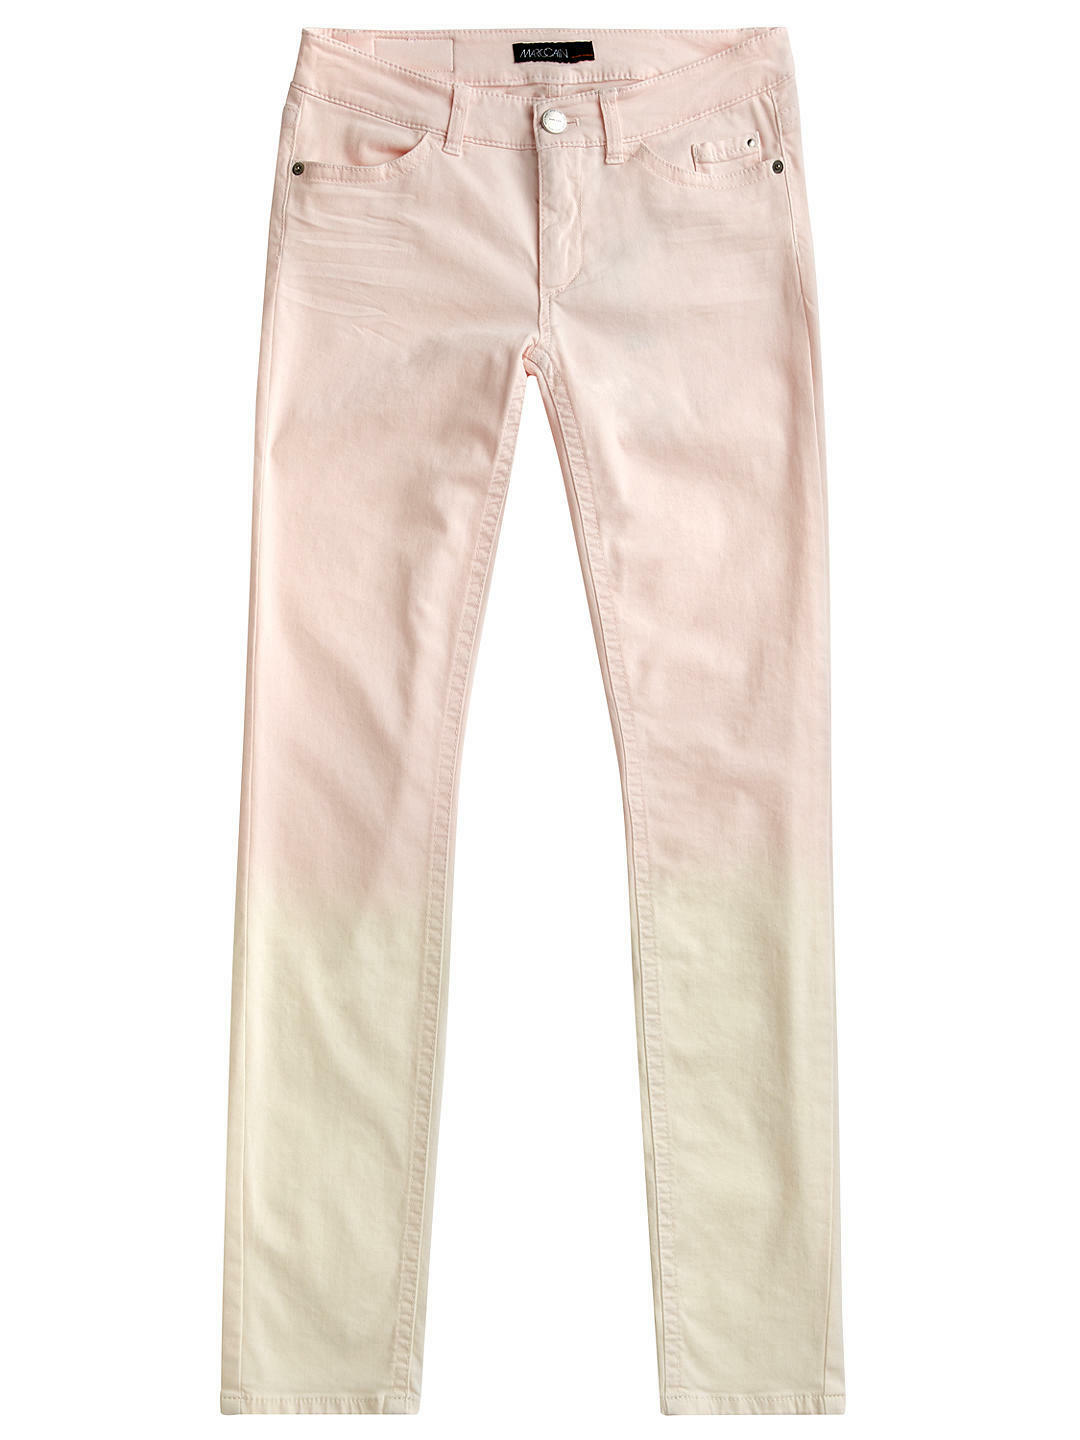 Marc Cain Ombre Slim Jeans, Pink, BNWT UK SIze 10 RRP